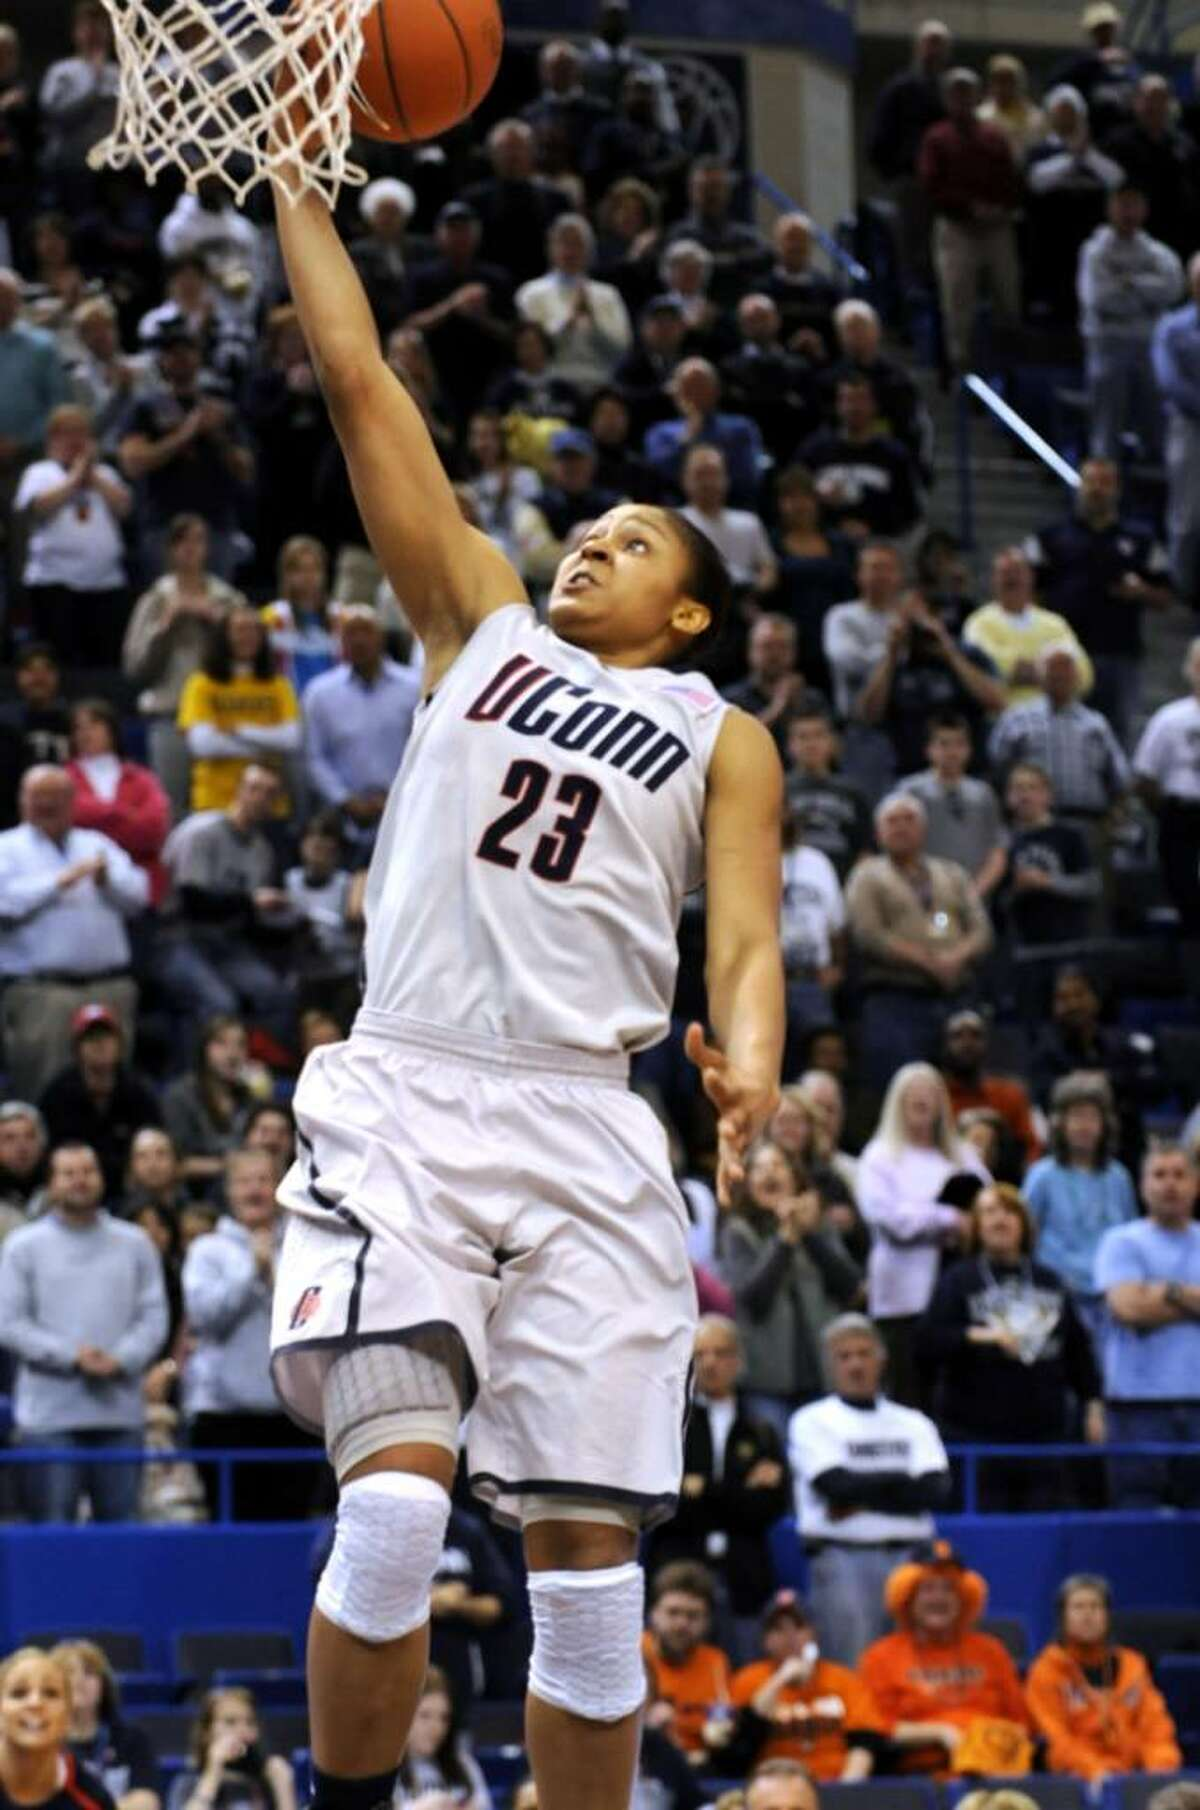 Connecticut's Maya Moore scores her 1,999th career point in the second half of an NCAA college Big East Championship quarterfinal women's basketball game against Syracuse in Hartford, Conn., Sunday, March 7, 2010. Connecticut won 77-41. (AP Photo/Bob Child)